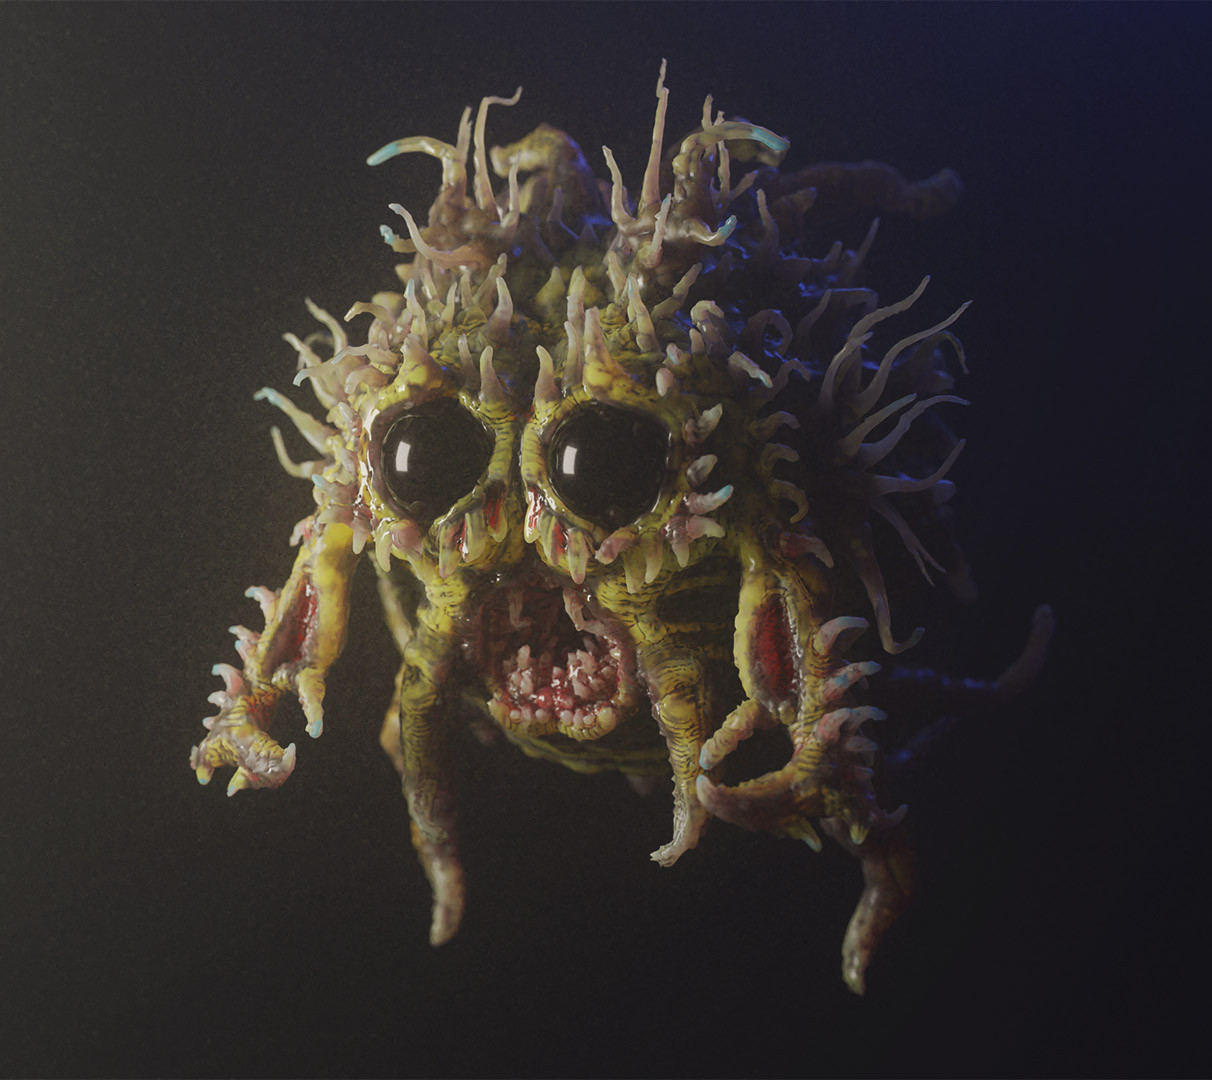 3d-Animation-Monster-cute.jpg